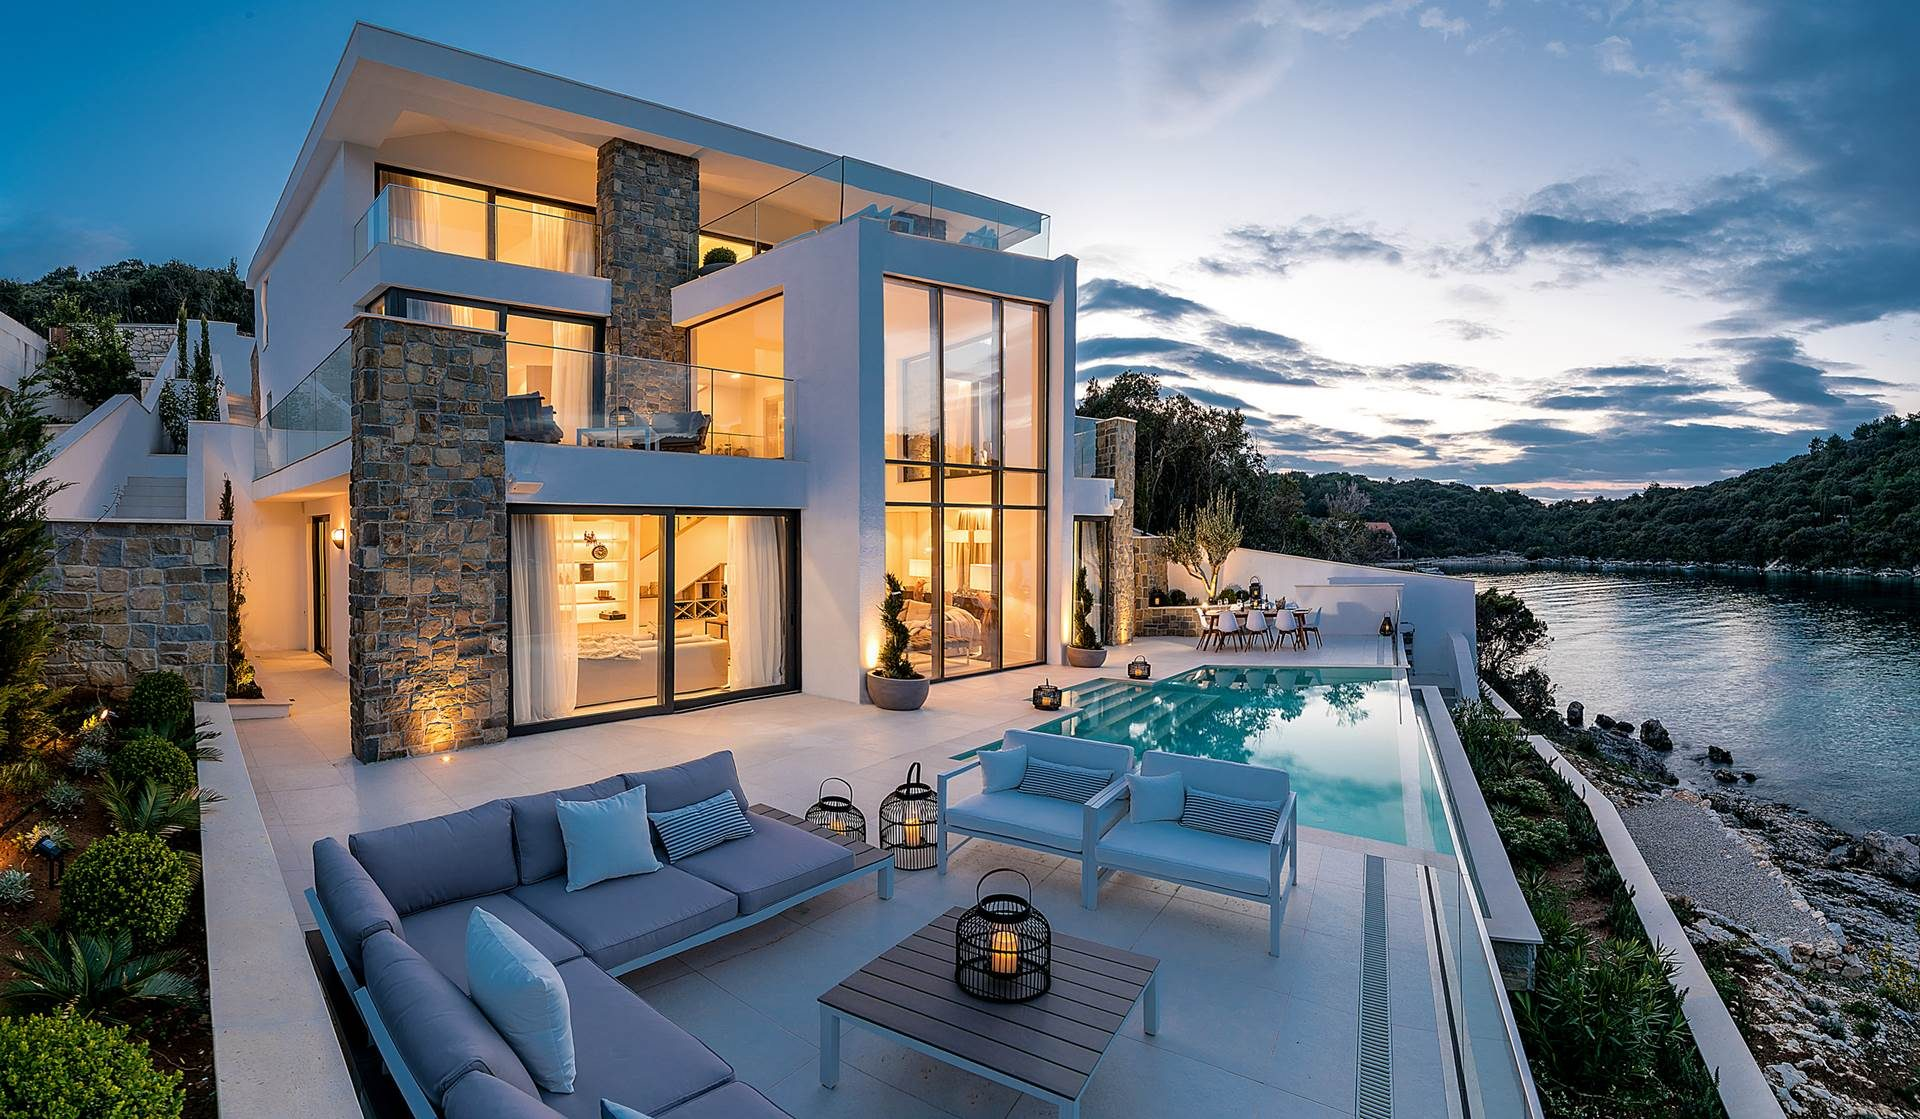 villas in croatia